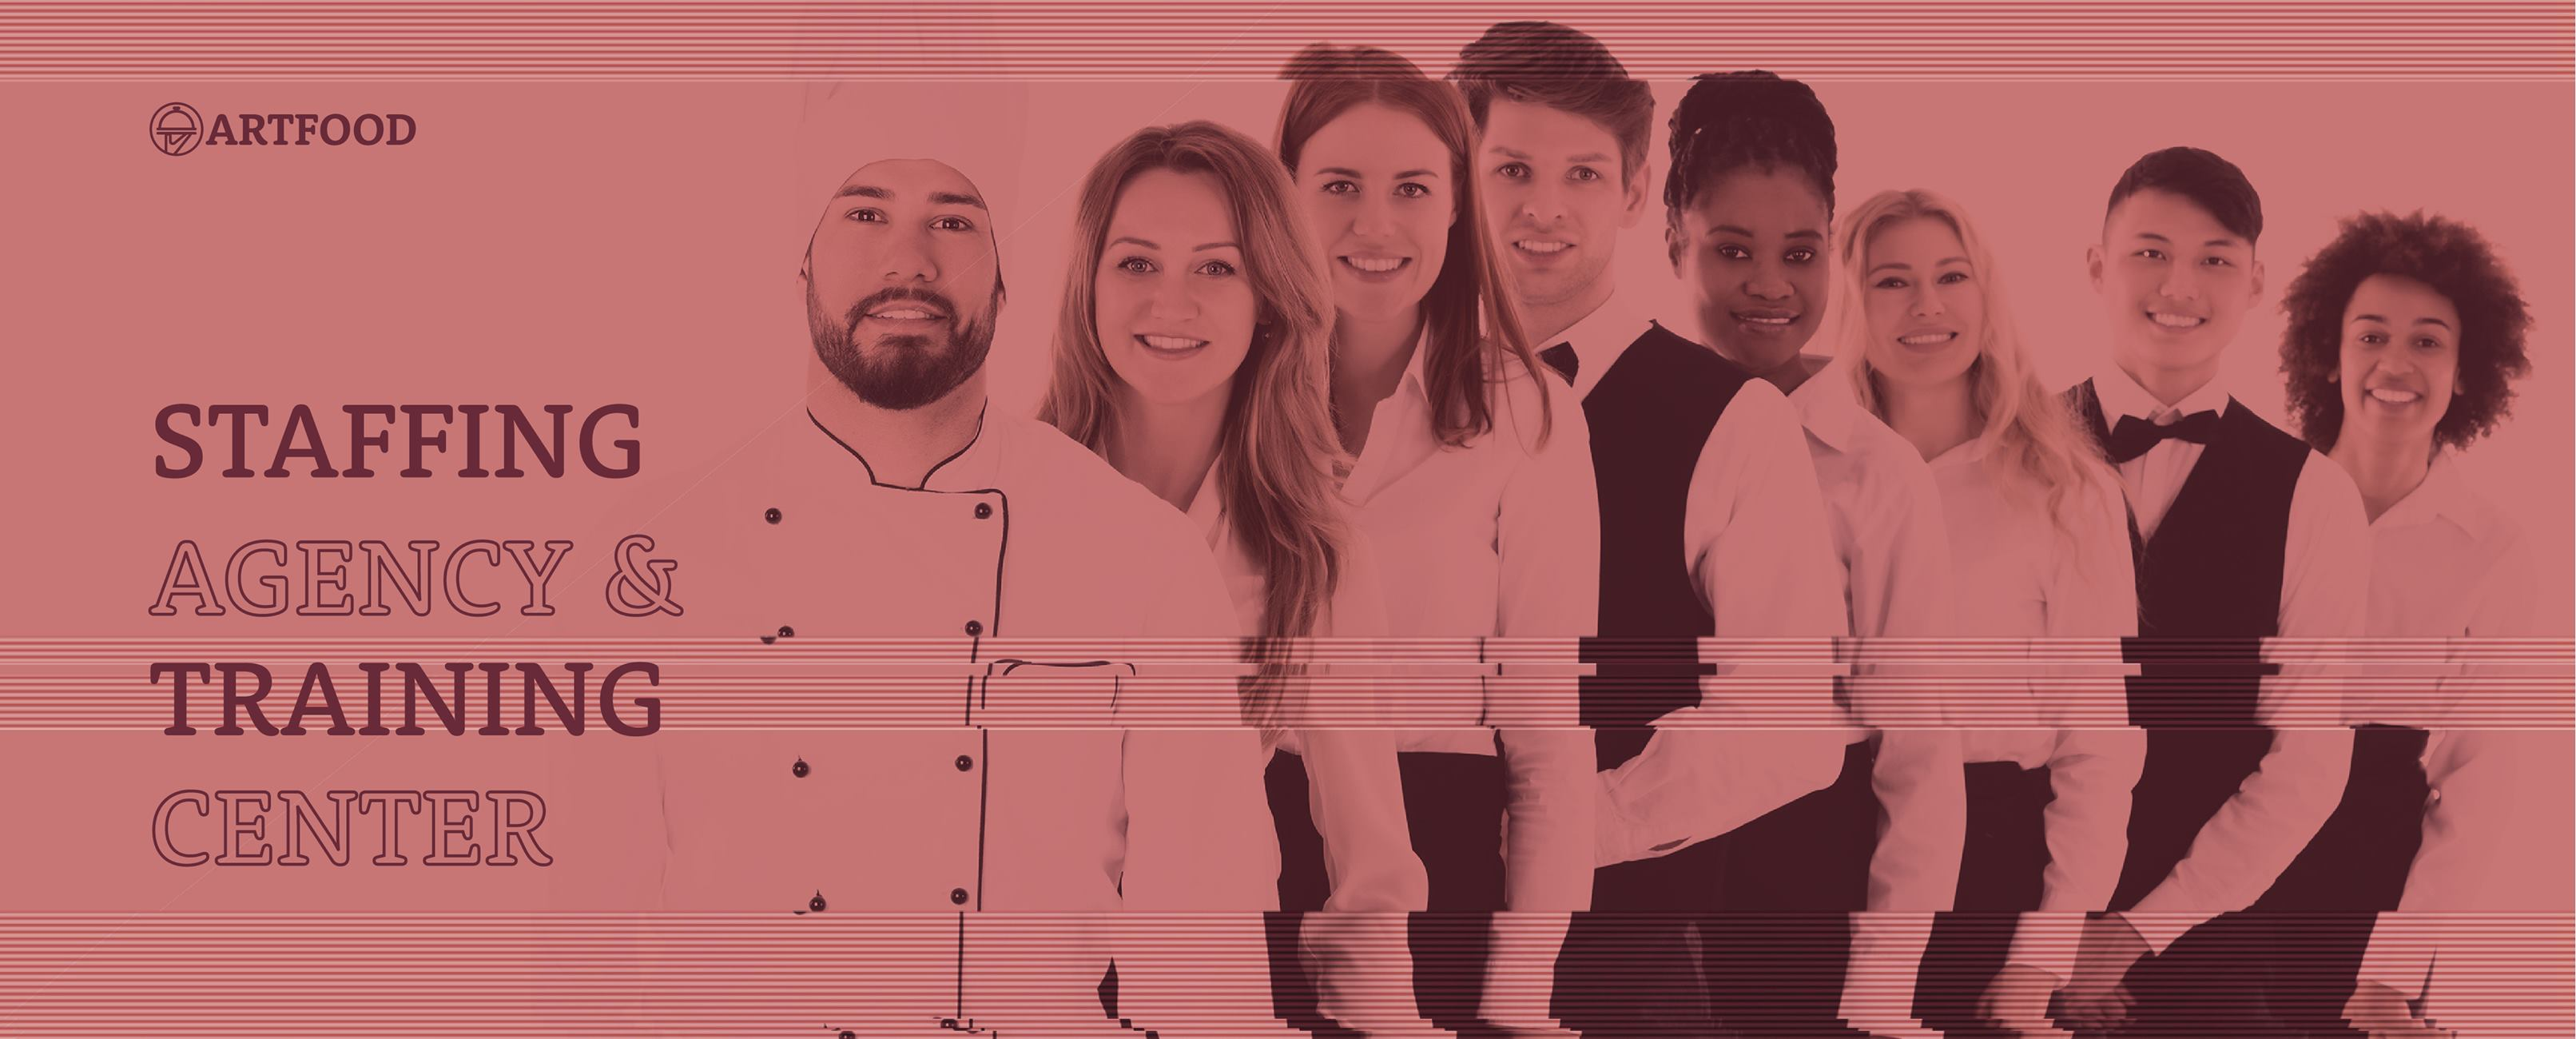 Artfood Staffing Logo with people in the background